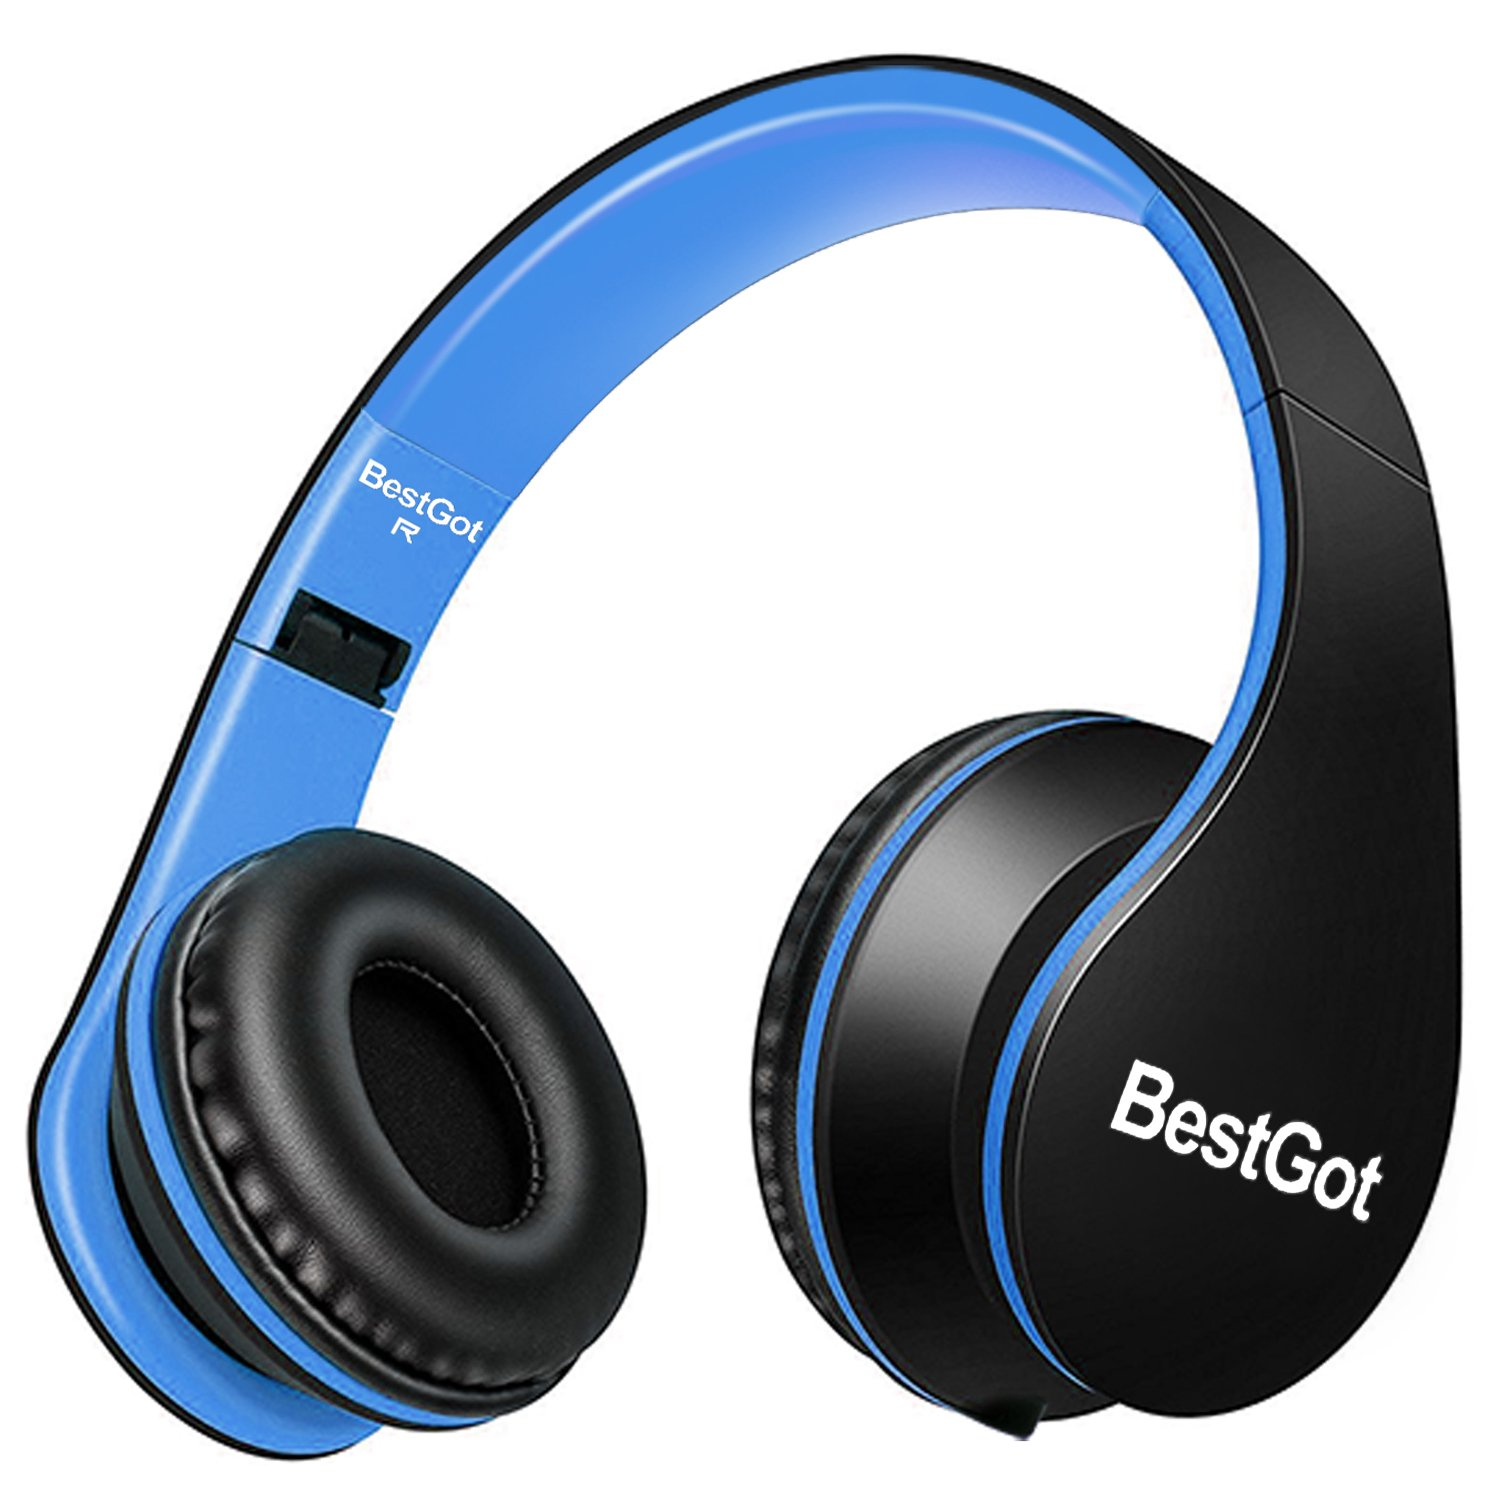 BestGot Over Ear Kids Headphones for Kids Boys Adult with microphone In-line Volume, Included Cloth Bag, Foldable Headset with 3.5mm plug removable cord (Black/Blue) by Bestgot